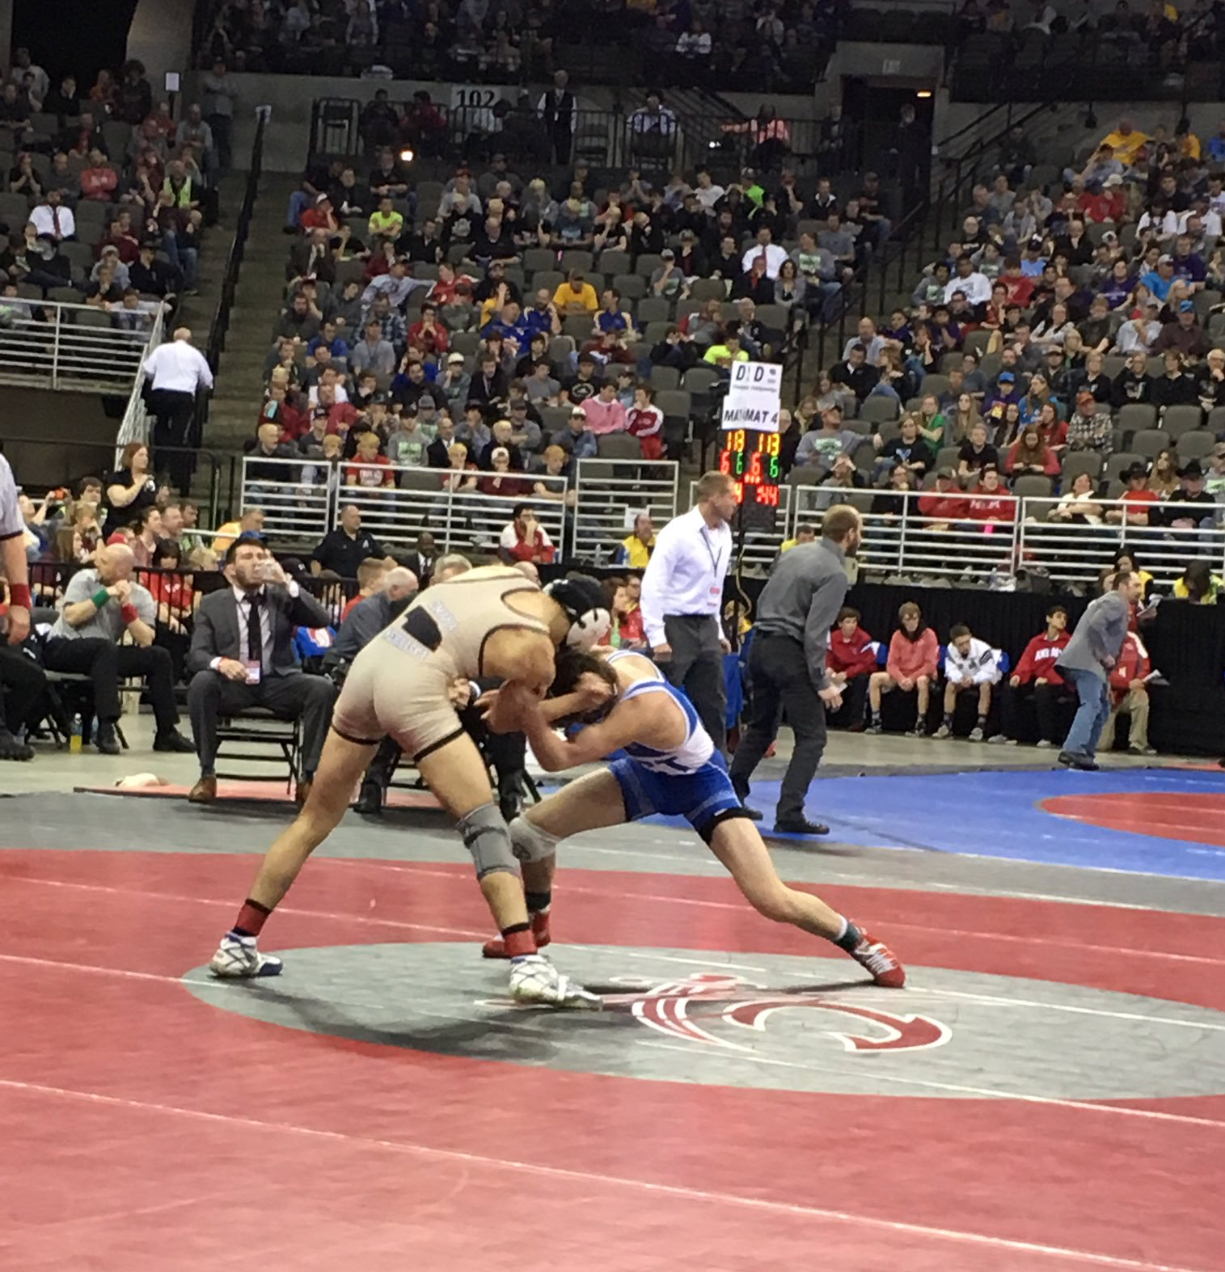 Maxx Mayfield competes against Omaha Burke's Joey Harrison in state final competition on February 18, 2017 at the Centurylink Center.